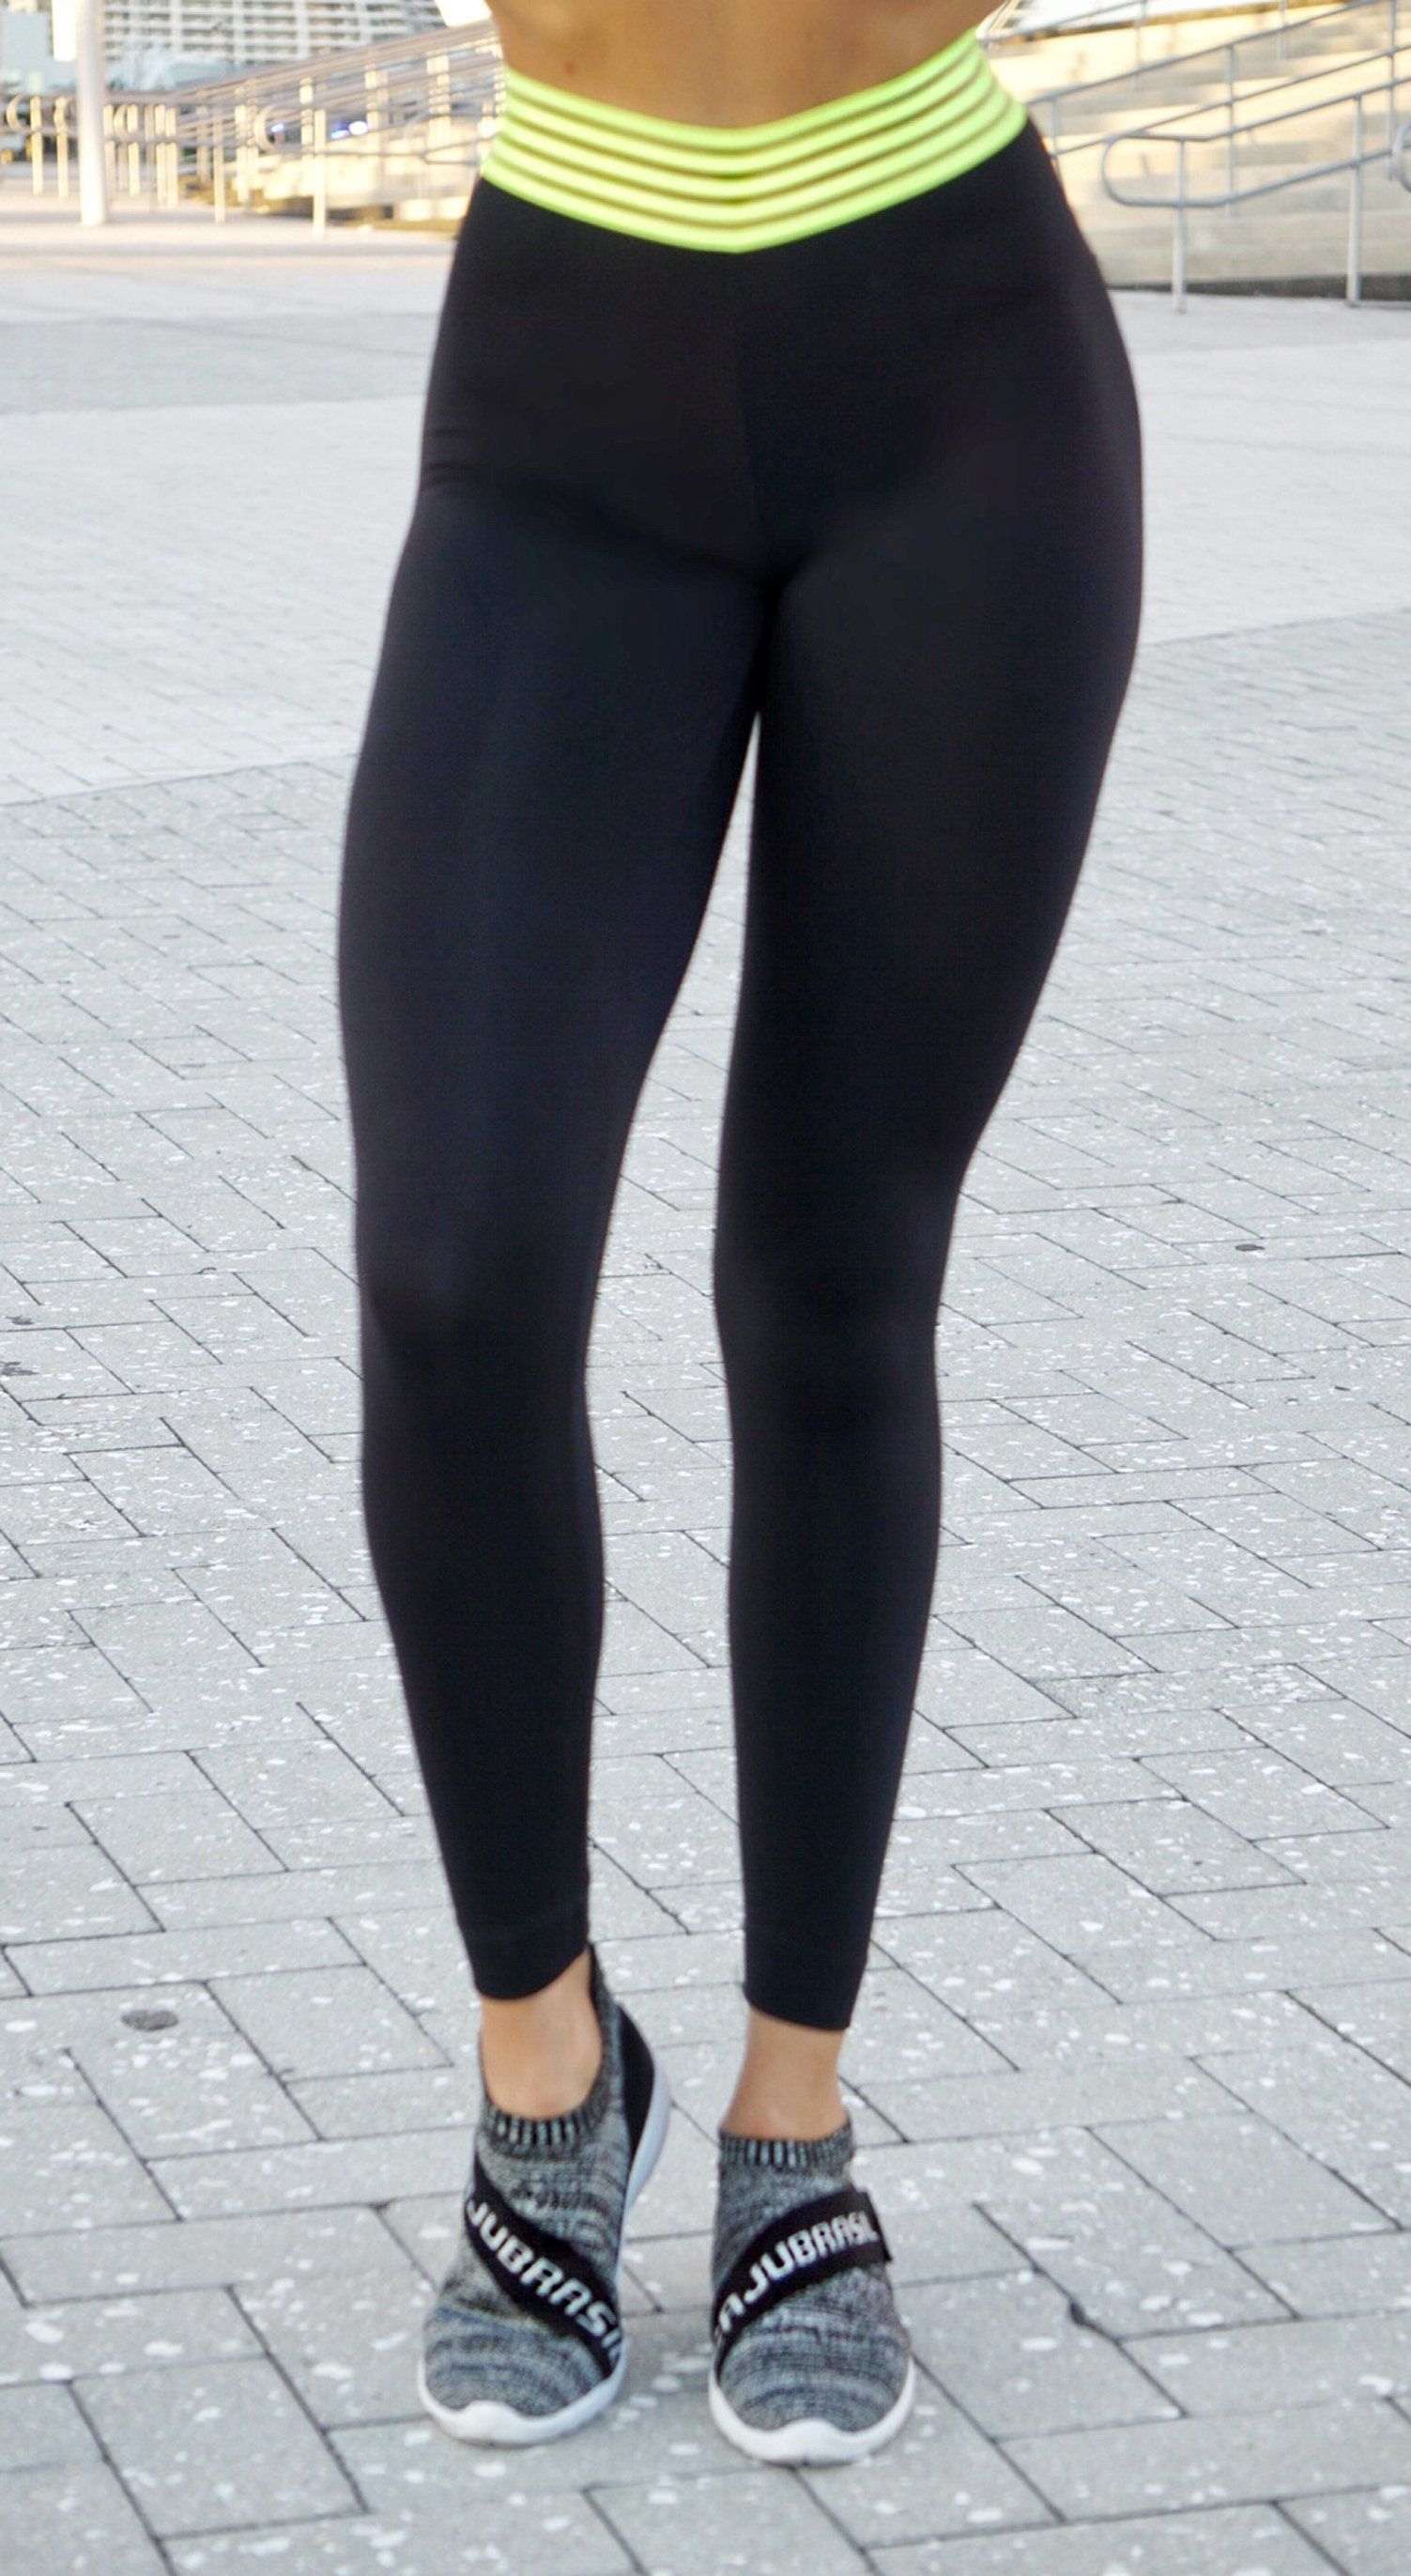 Brazilian Workout Leggings - Fusion Black & Neon Yellow